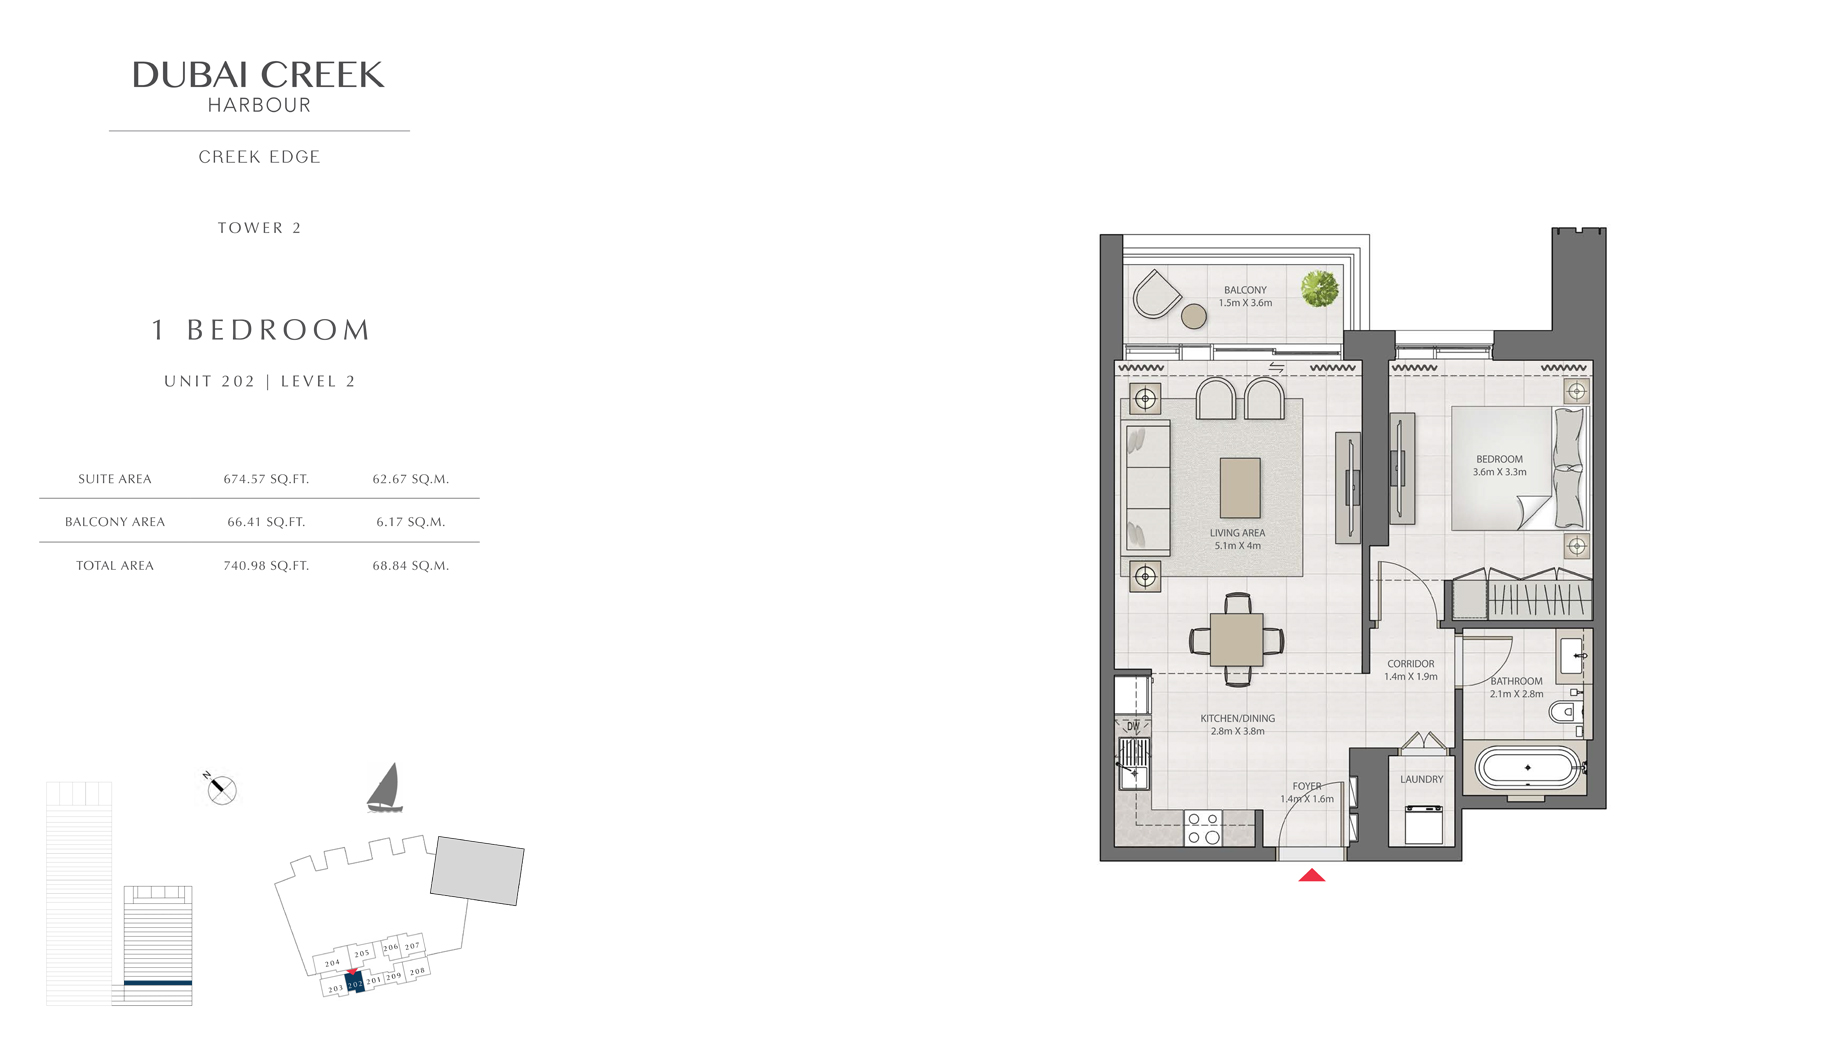 1 Bedroom Tower 2 Unit 202 Level 2 Size 740 sq.ft